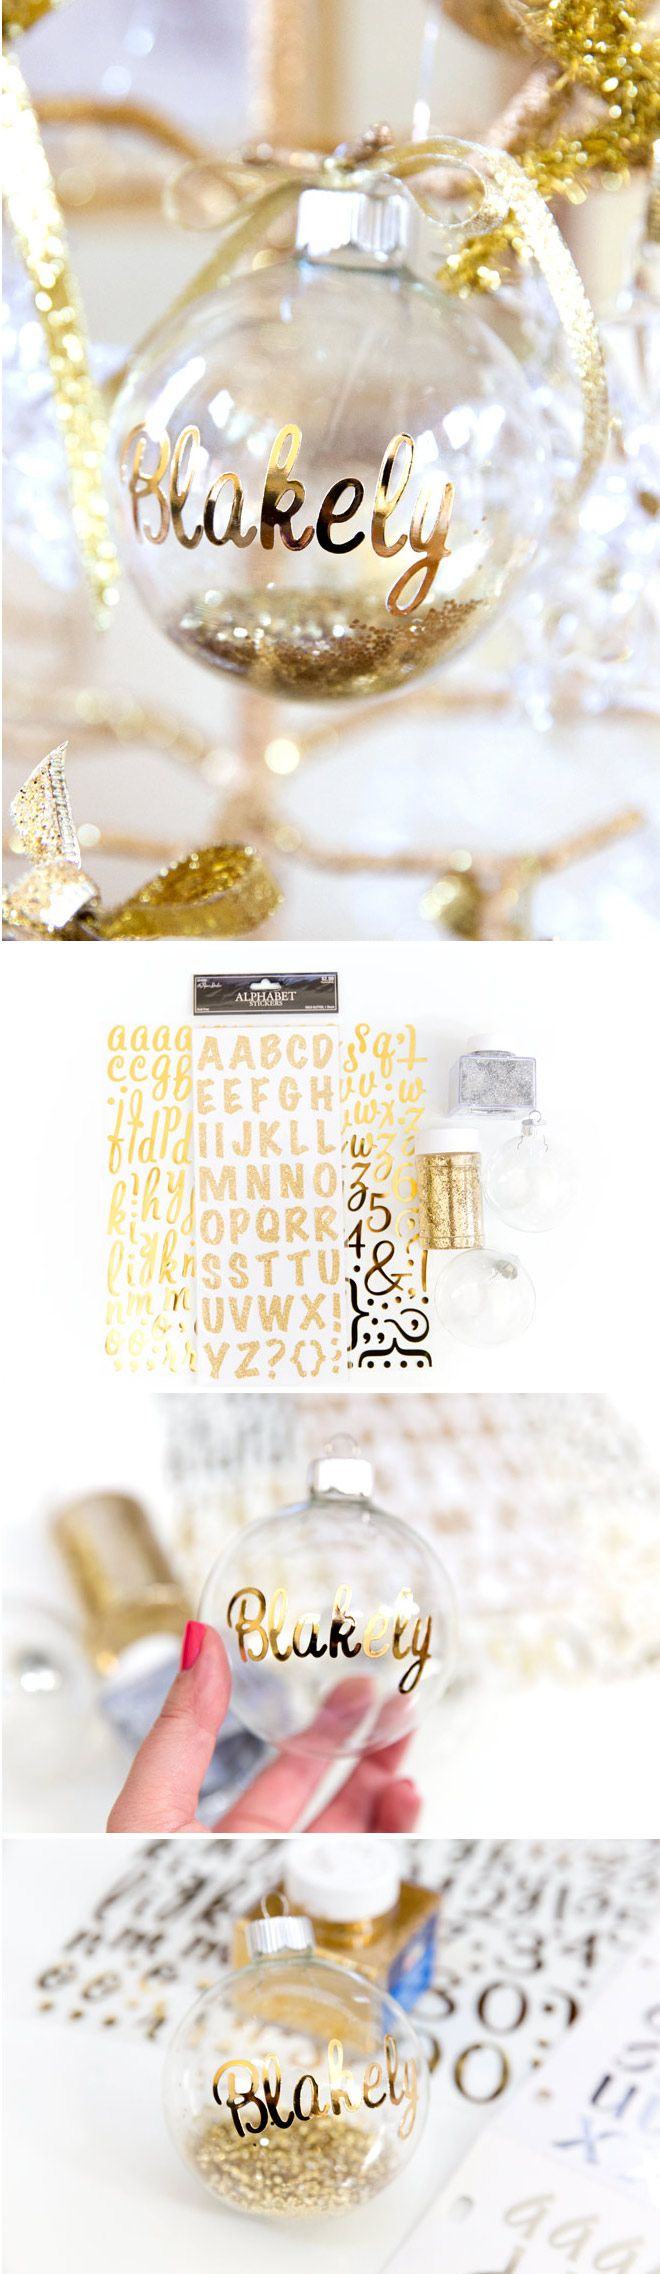 Diy Personalized Ornaments For Christmas